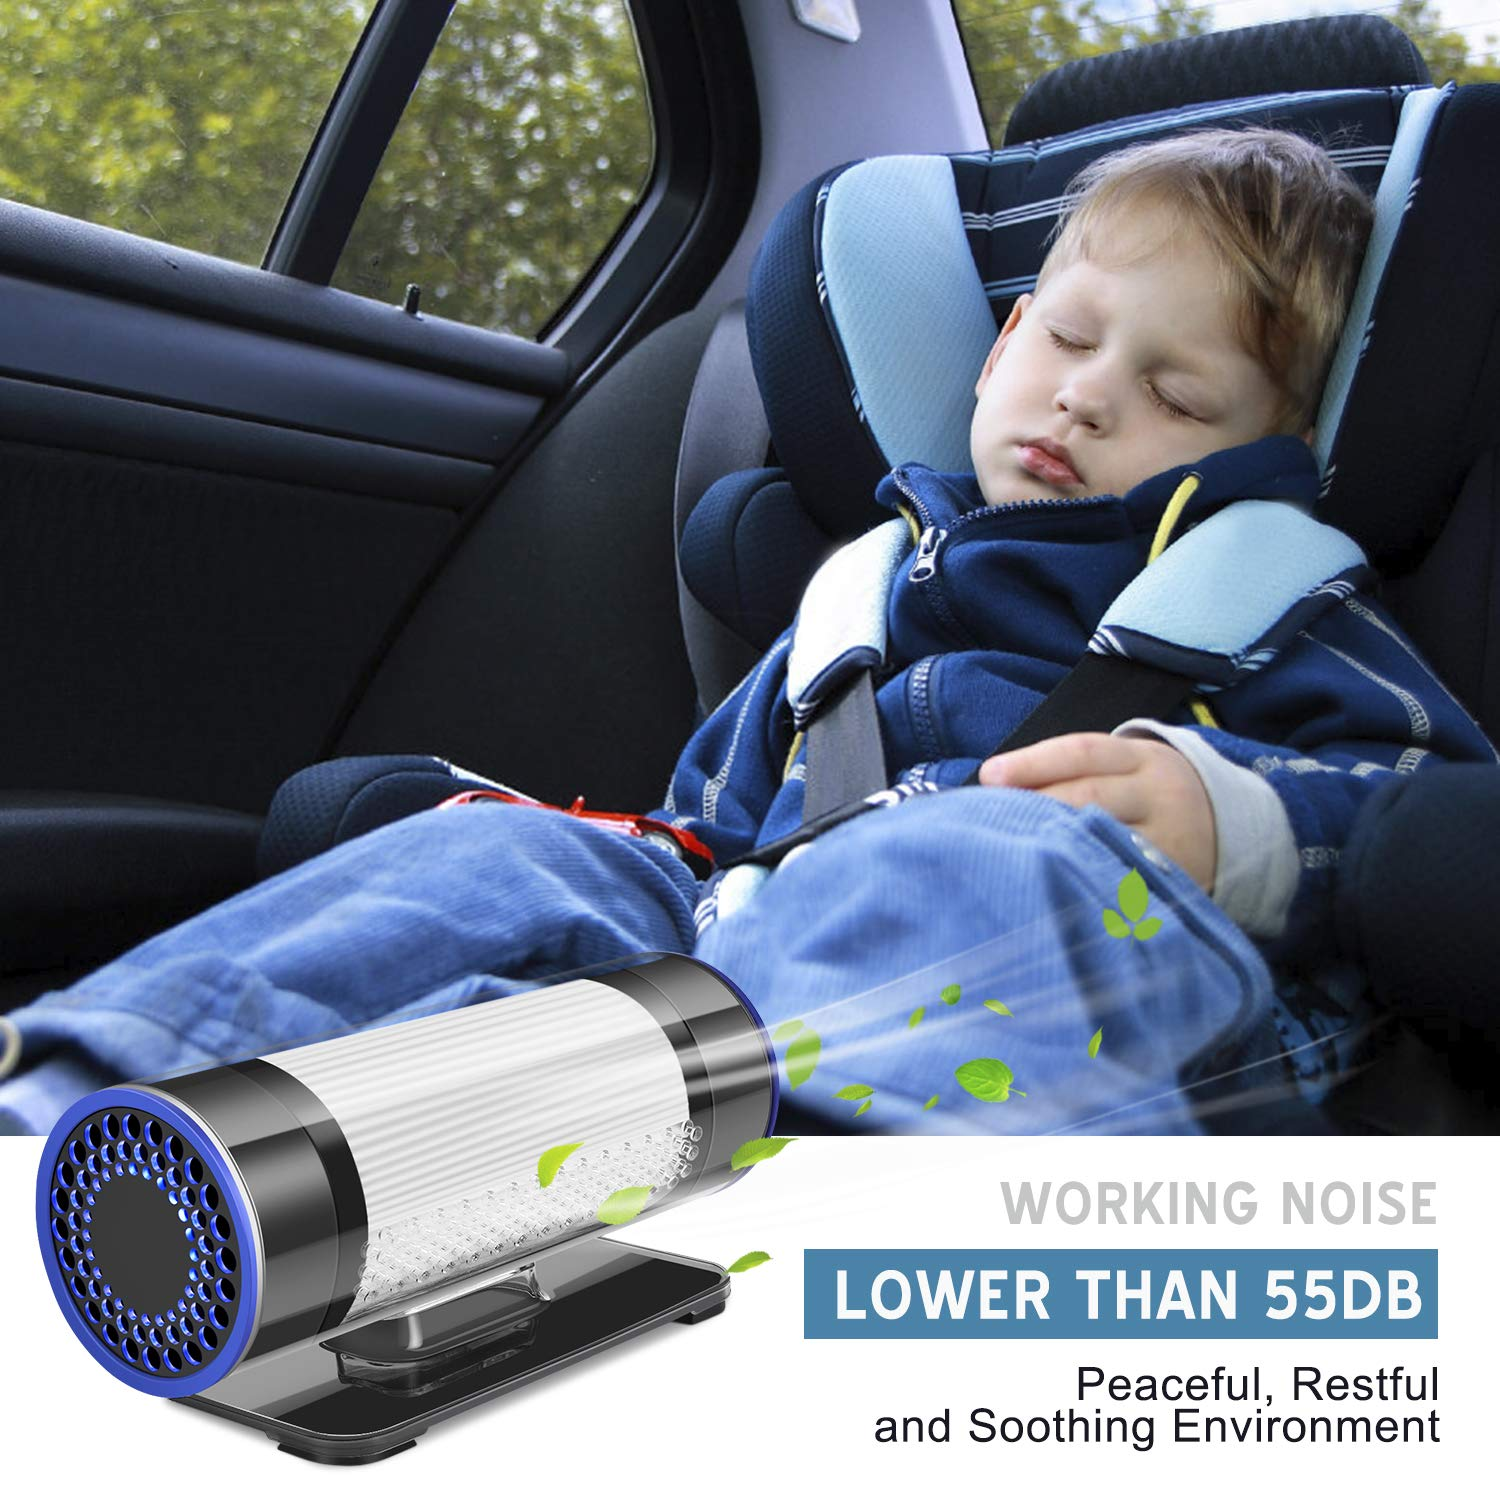 QUEENTY Car Air Purifier - True HEPA & Active Carbon Filter, Automotive Car Air Freshener for Allergies, Small Room, Home, Office, Remove Dust, Smoke, Pollen, Odors, Smell, With USB Cable, Car Charger